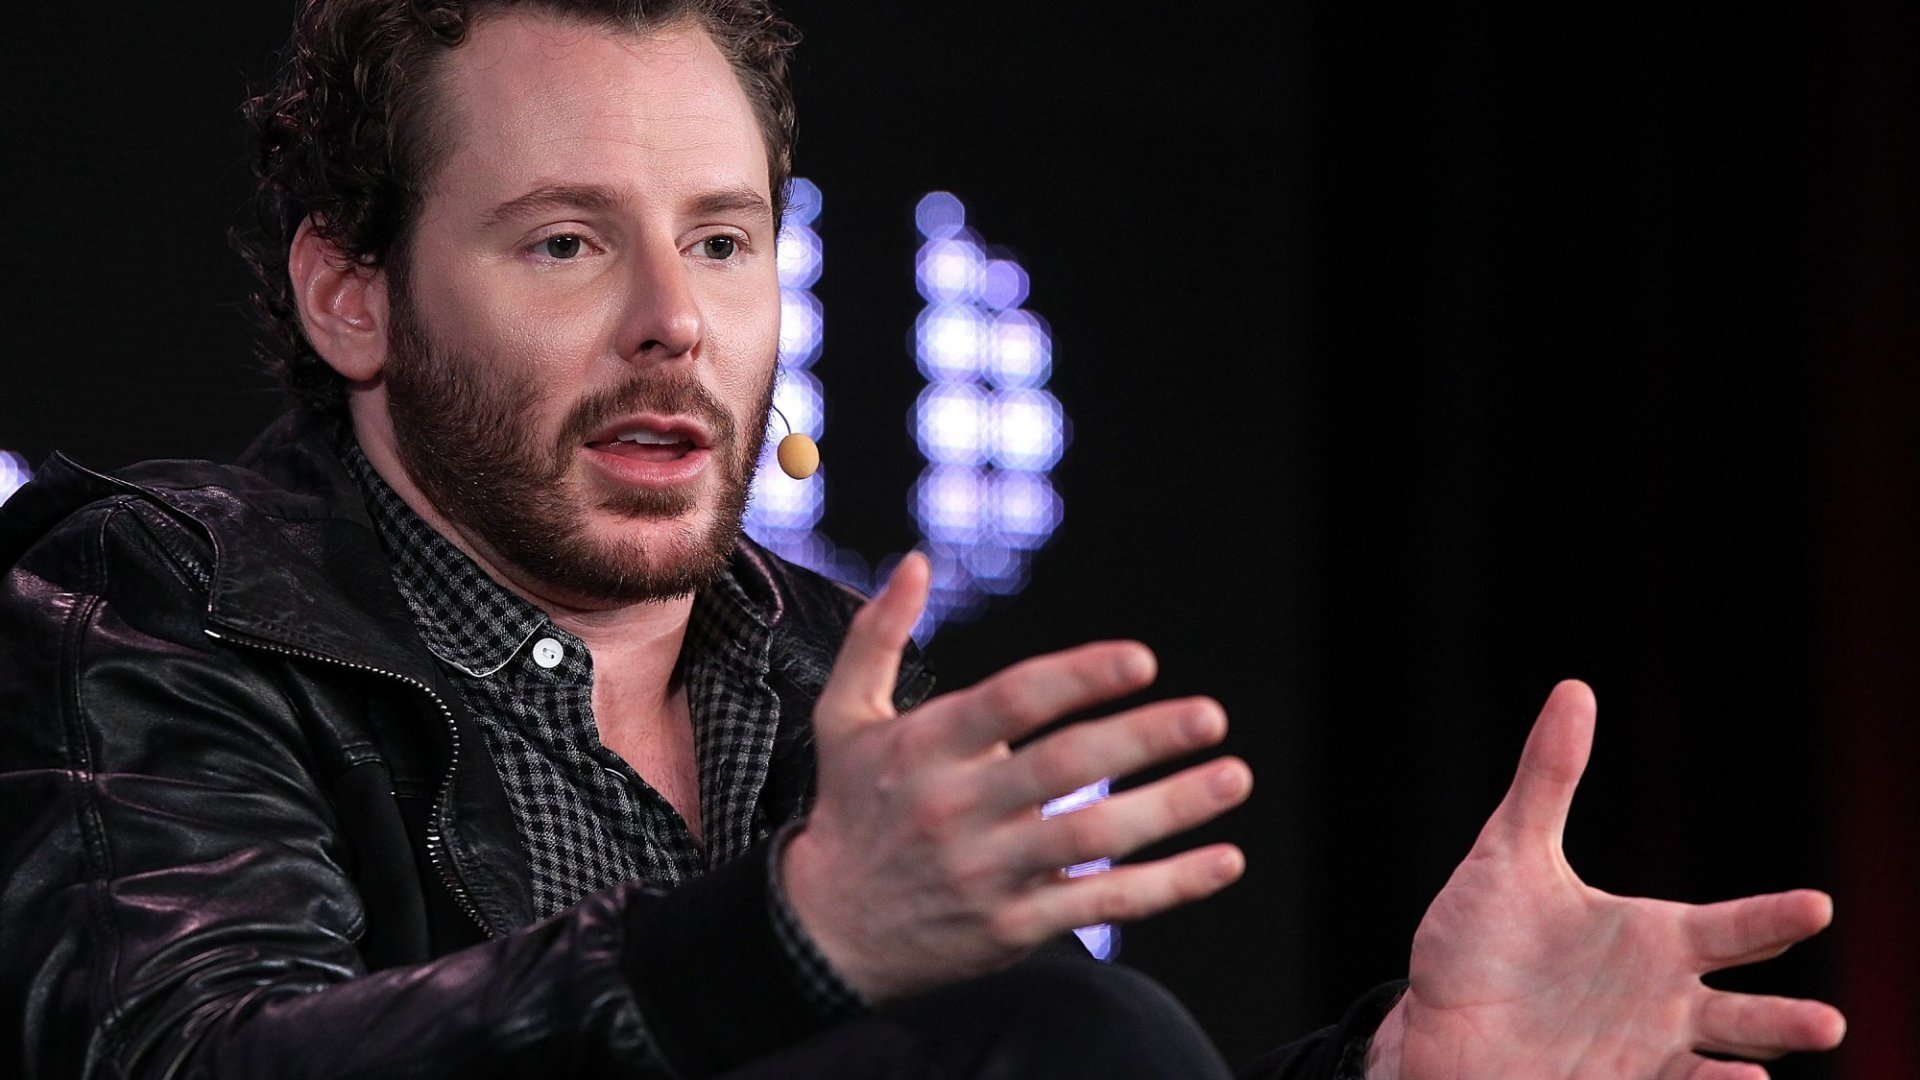 Napster Co-Founder Sean Parker Spearheads Pot Legalization Bid in California